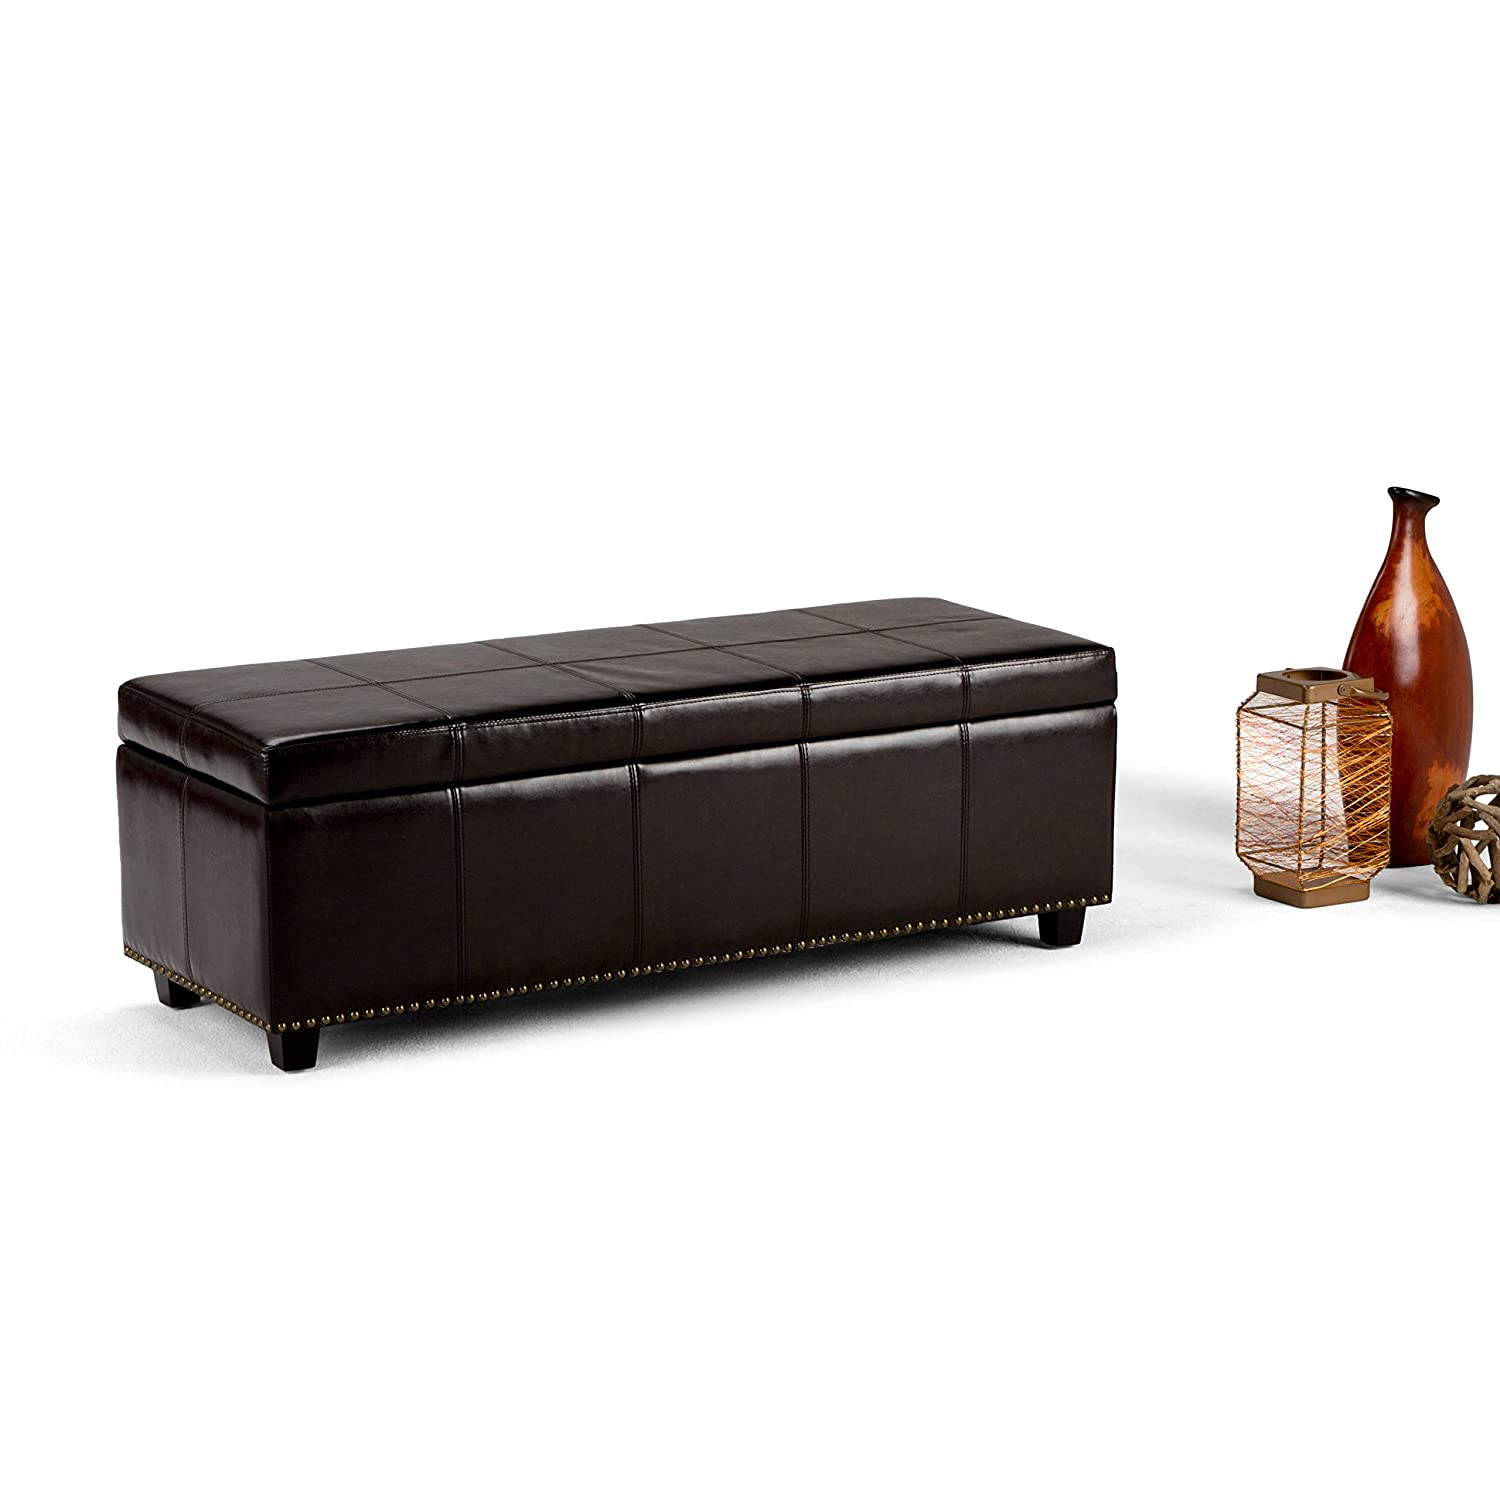 box folding bench medium ottolea rest ottoman blk leather toy storage chest insassy ins foot hope med products faux